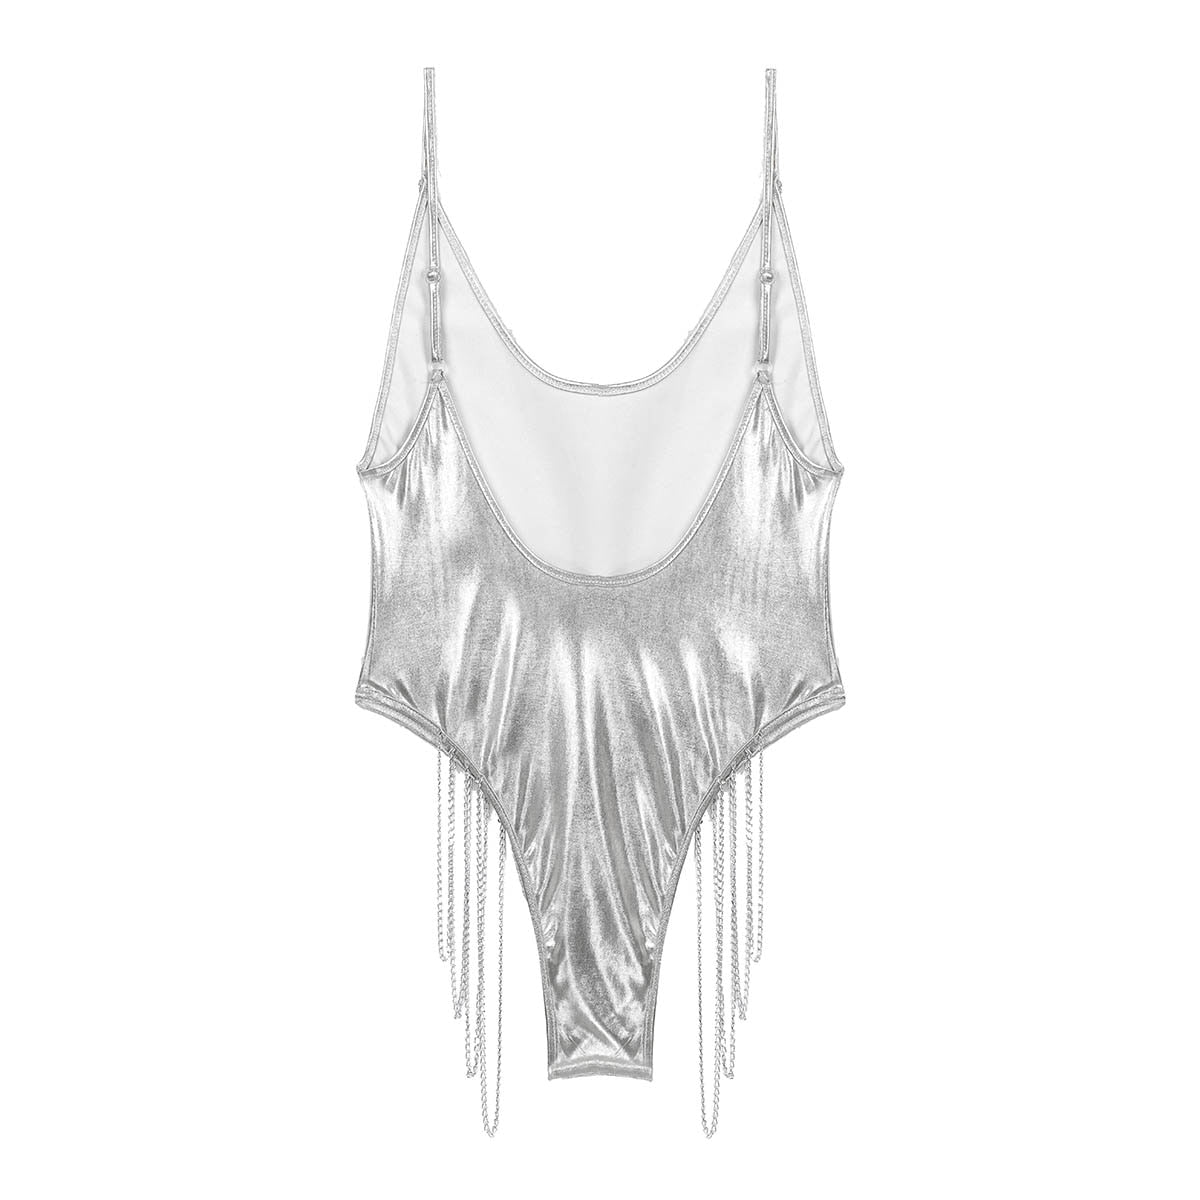 Women's Leotard Swimsuit Shiny Metallic Swimwear Jumpsuit Romper with Metal Chain Swimming Suit Wetlook Patent Leotard Bodysuits - Smoulder Products